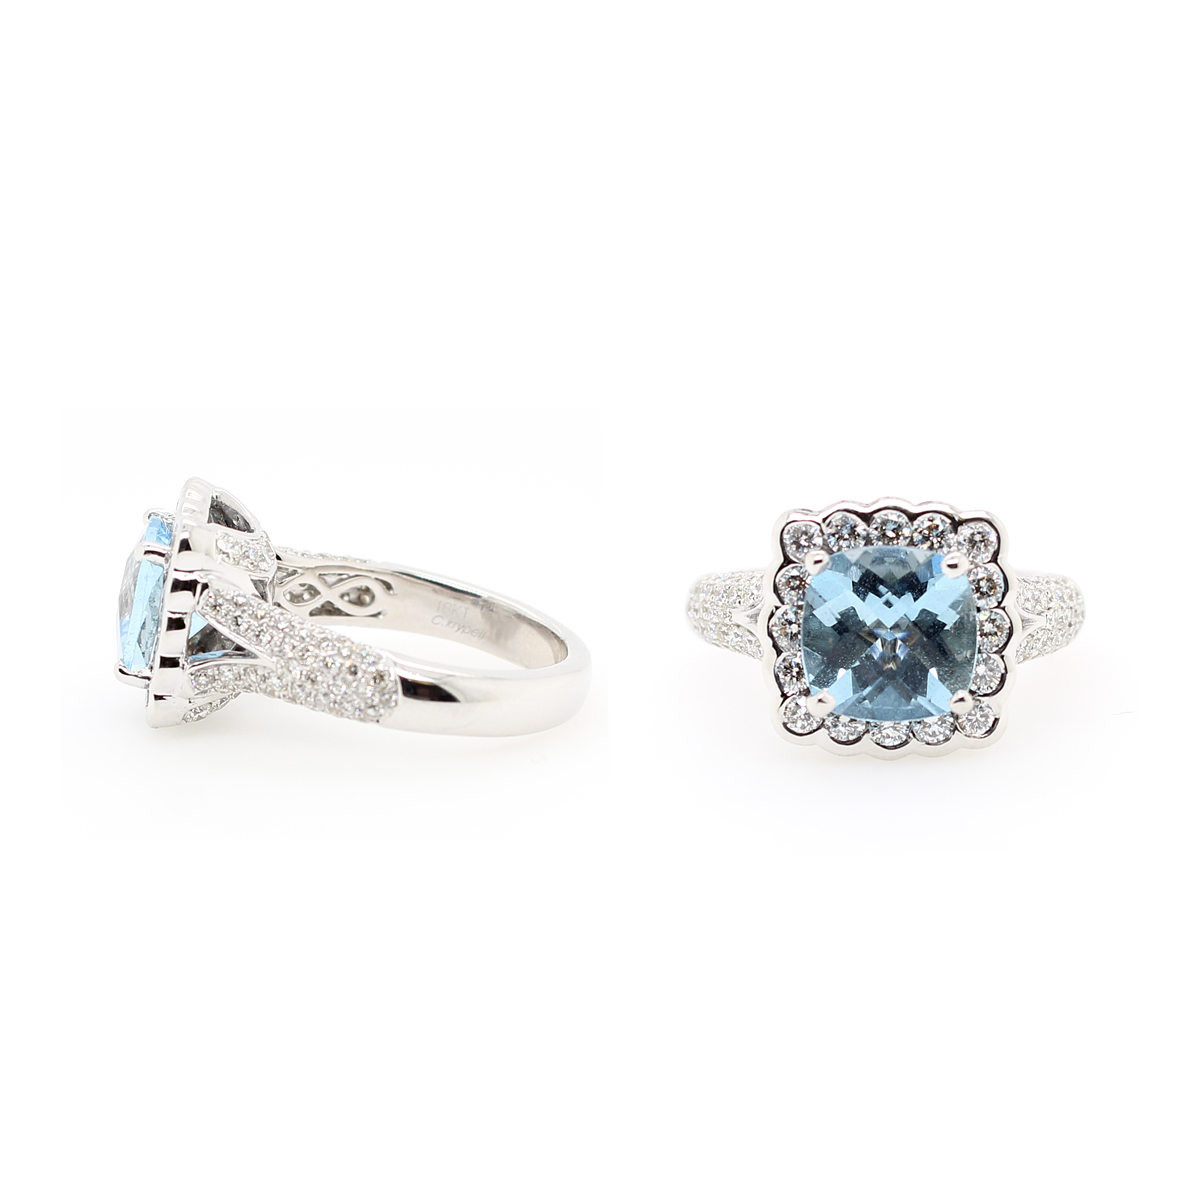 Charles Krypell 18 Karat White Gold Aquamarine and Diamond Ring